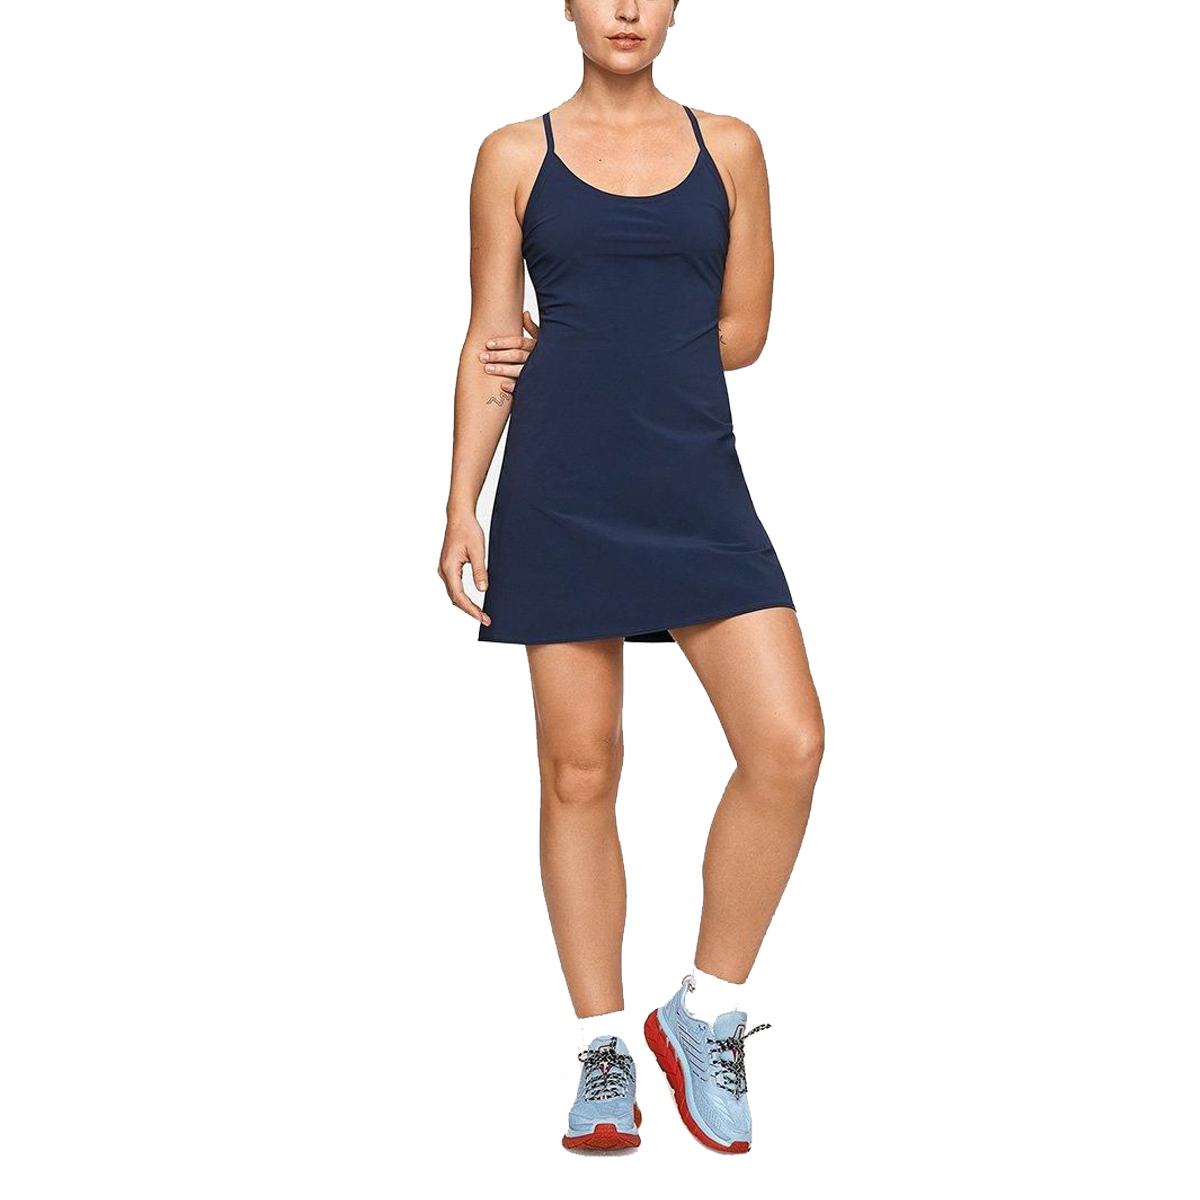 Outdoor Voices The Exercise Dress in Navy